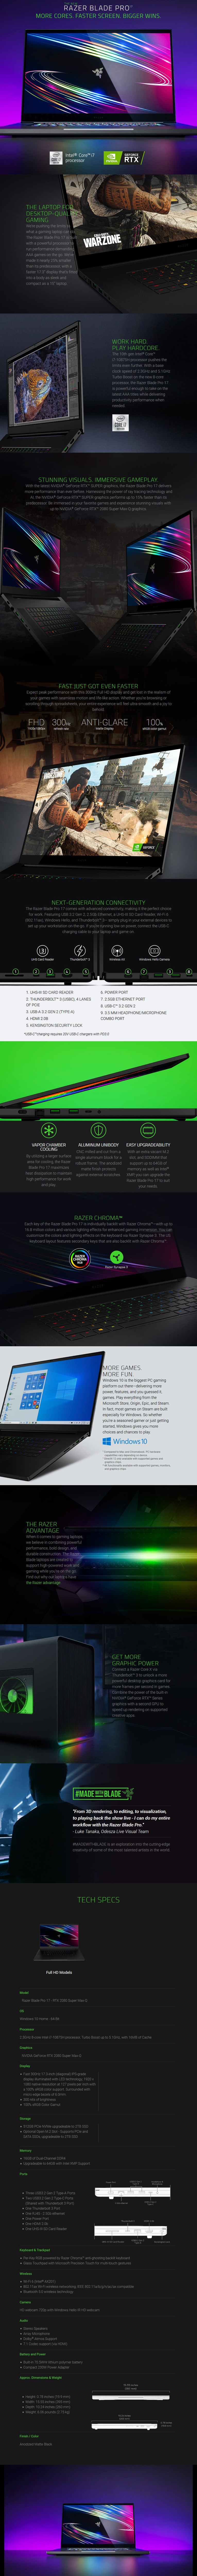 "Razer Blade Pro 17 17.3"" 300Hz Gaming Laptop i7 16GB 512GB RTX2080S W10H - Overview 1"